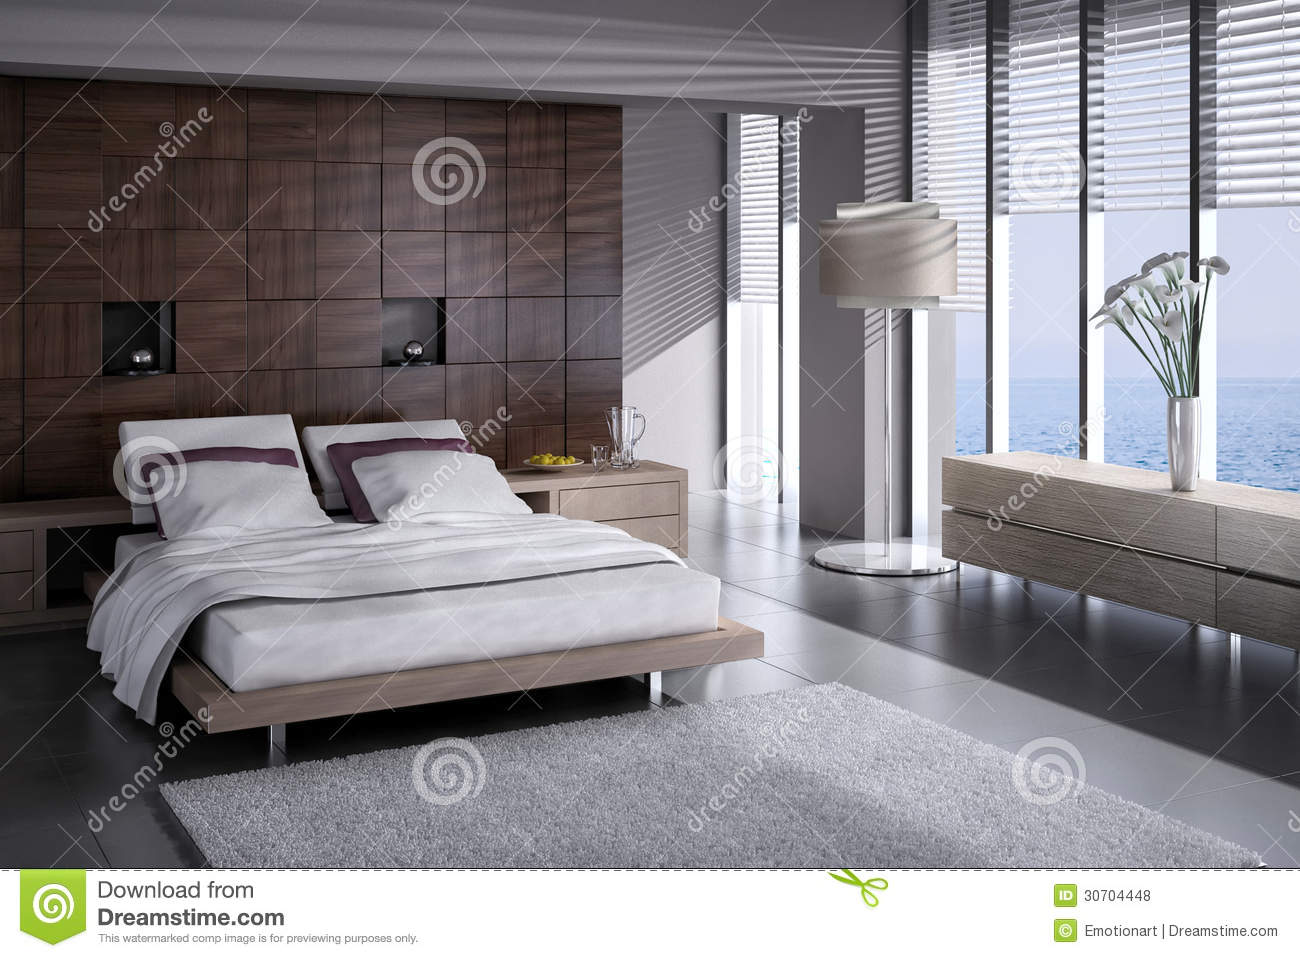 Chambre coucher exclusive de conception architecture for Interieur de chambre a coucher